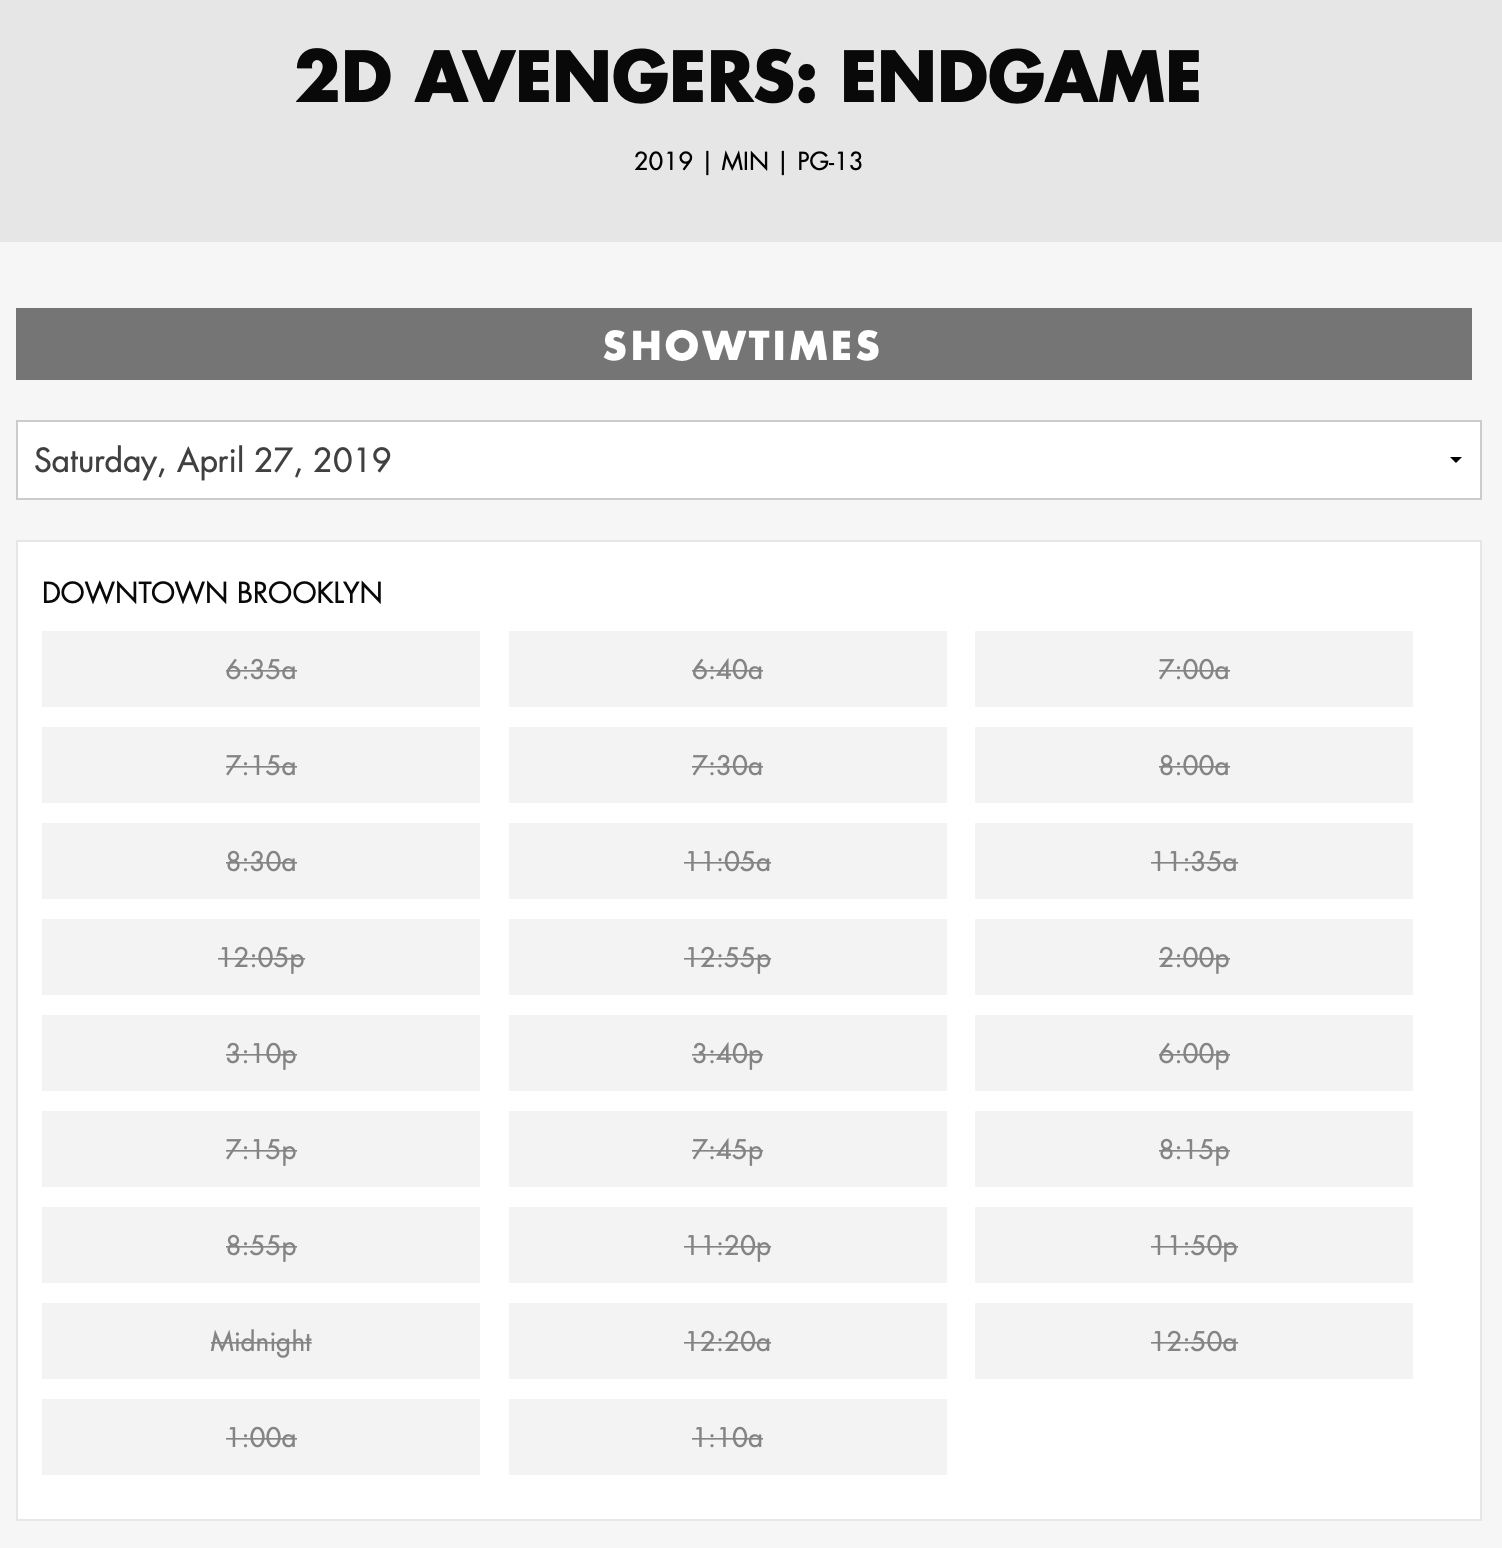 Avengers is sold out